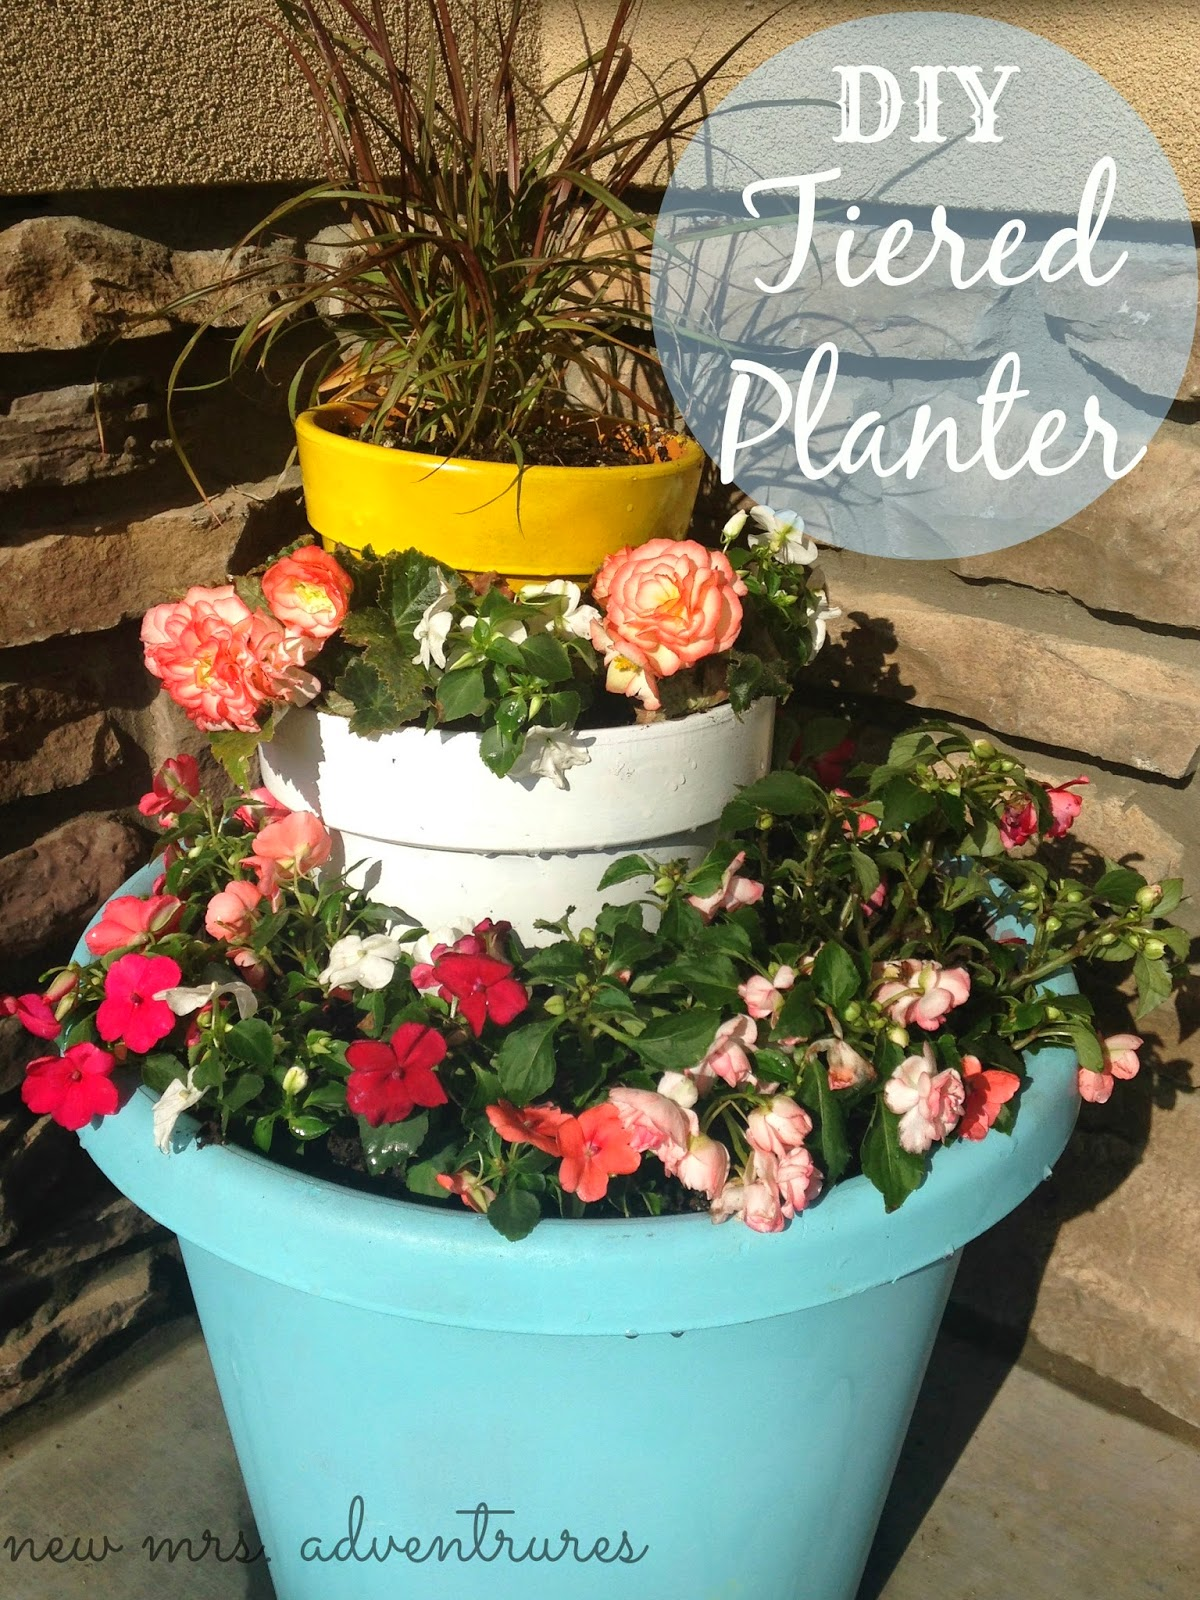 DIY+Tiered+Planter 16 Spring Home Decor Projects 46